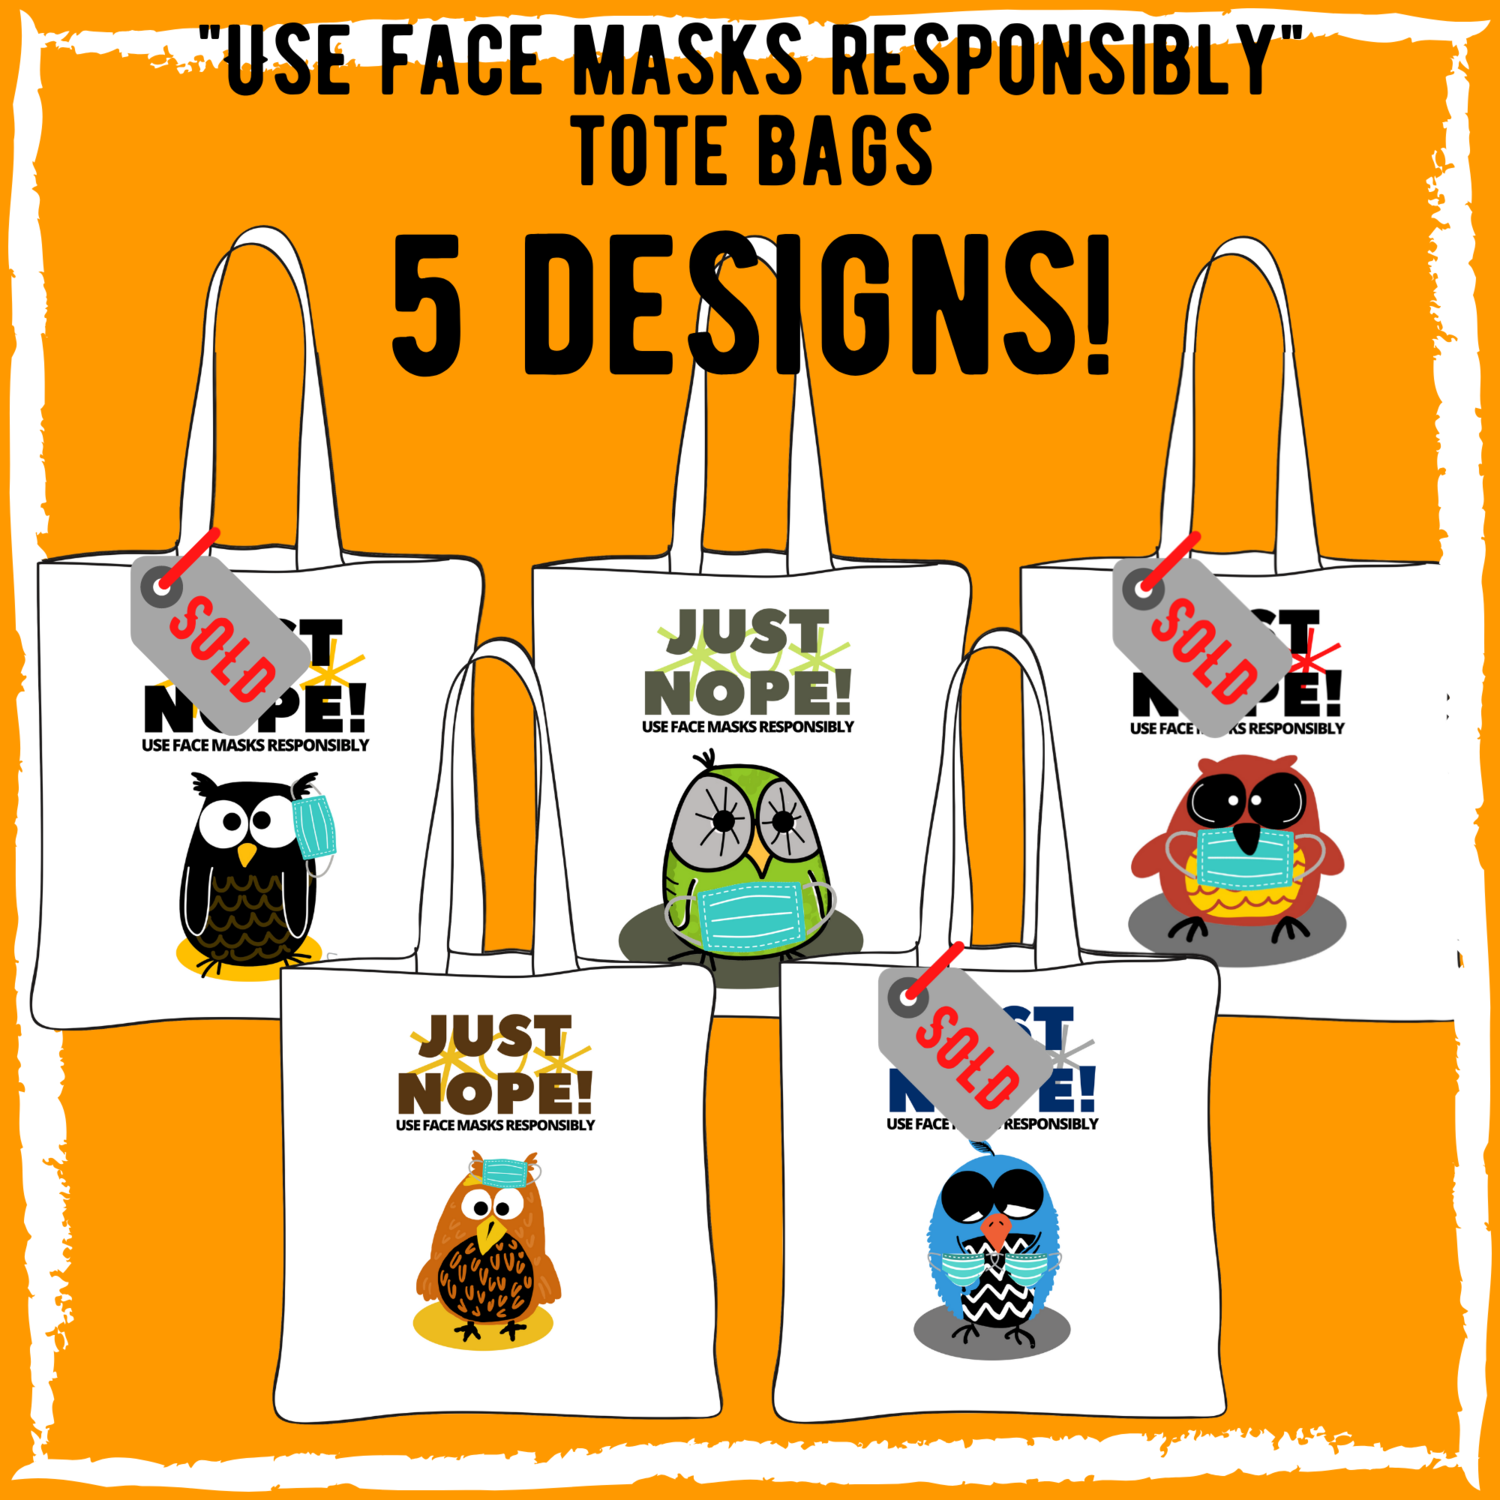 """Use Face Masks Responsibly"" - White Canvas Tote Bag - 5 Designs"